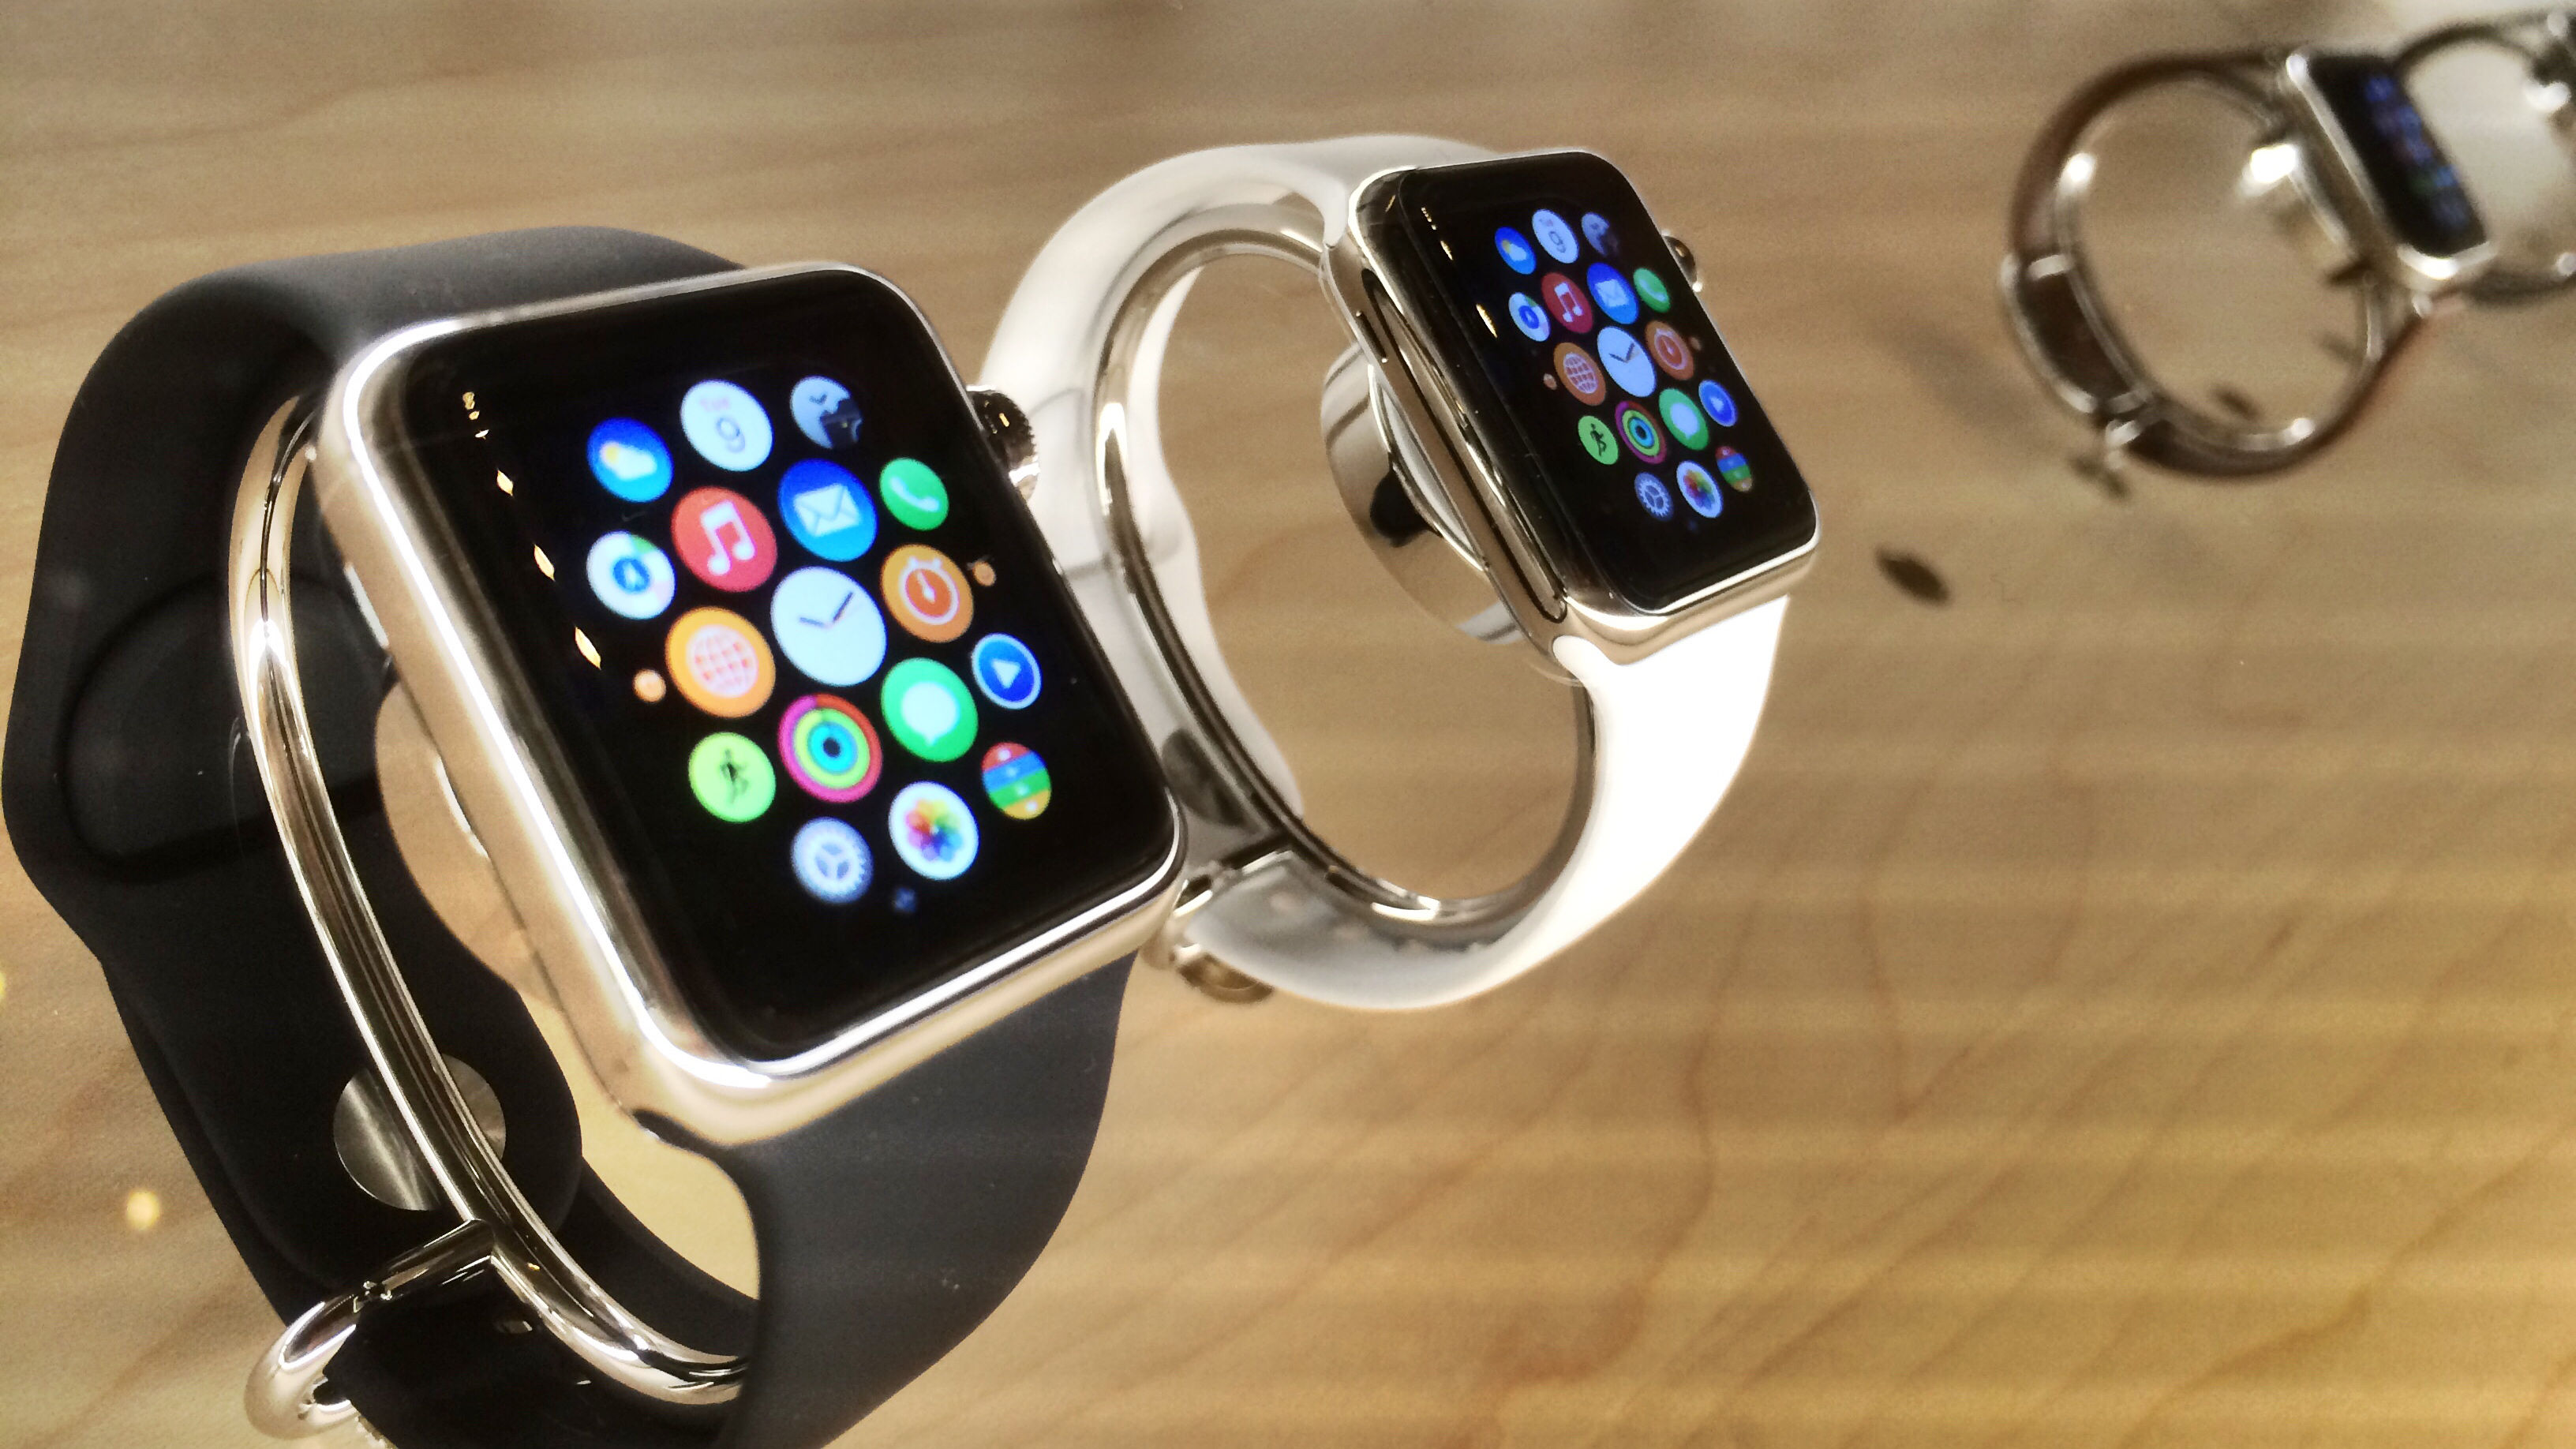 Apple Watch launch, Apr 10, 2015, by Shinya Suzuki, 01 (3264x1836)